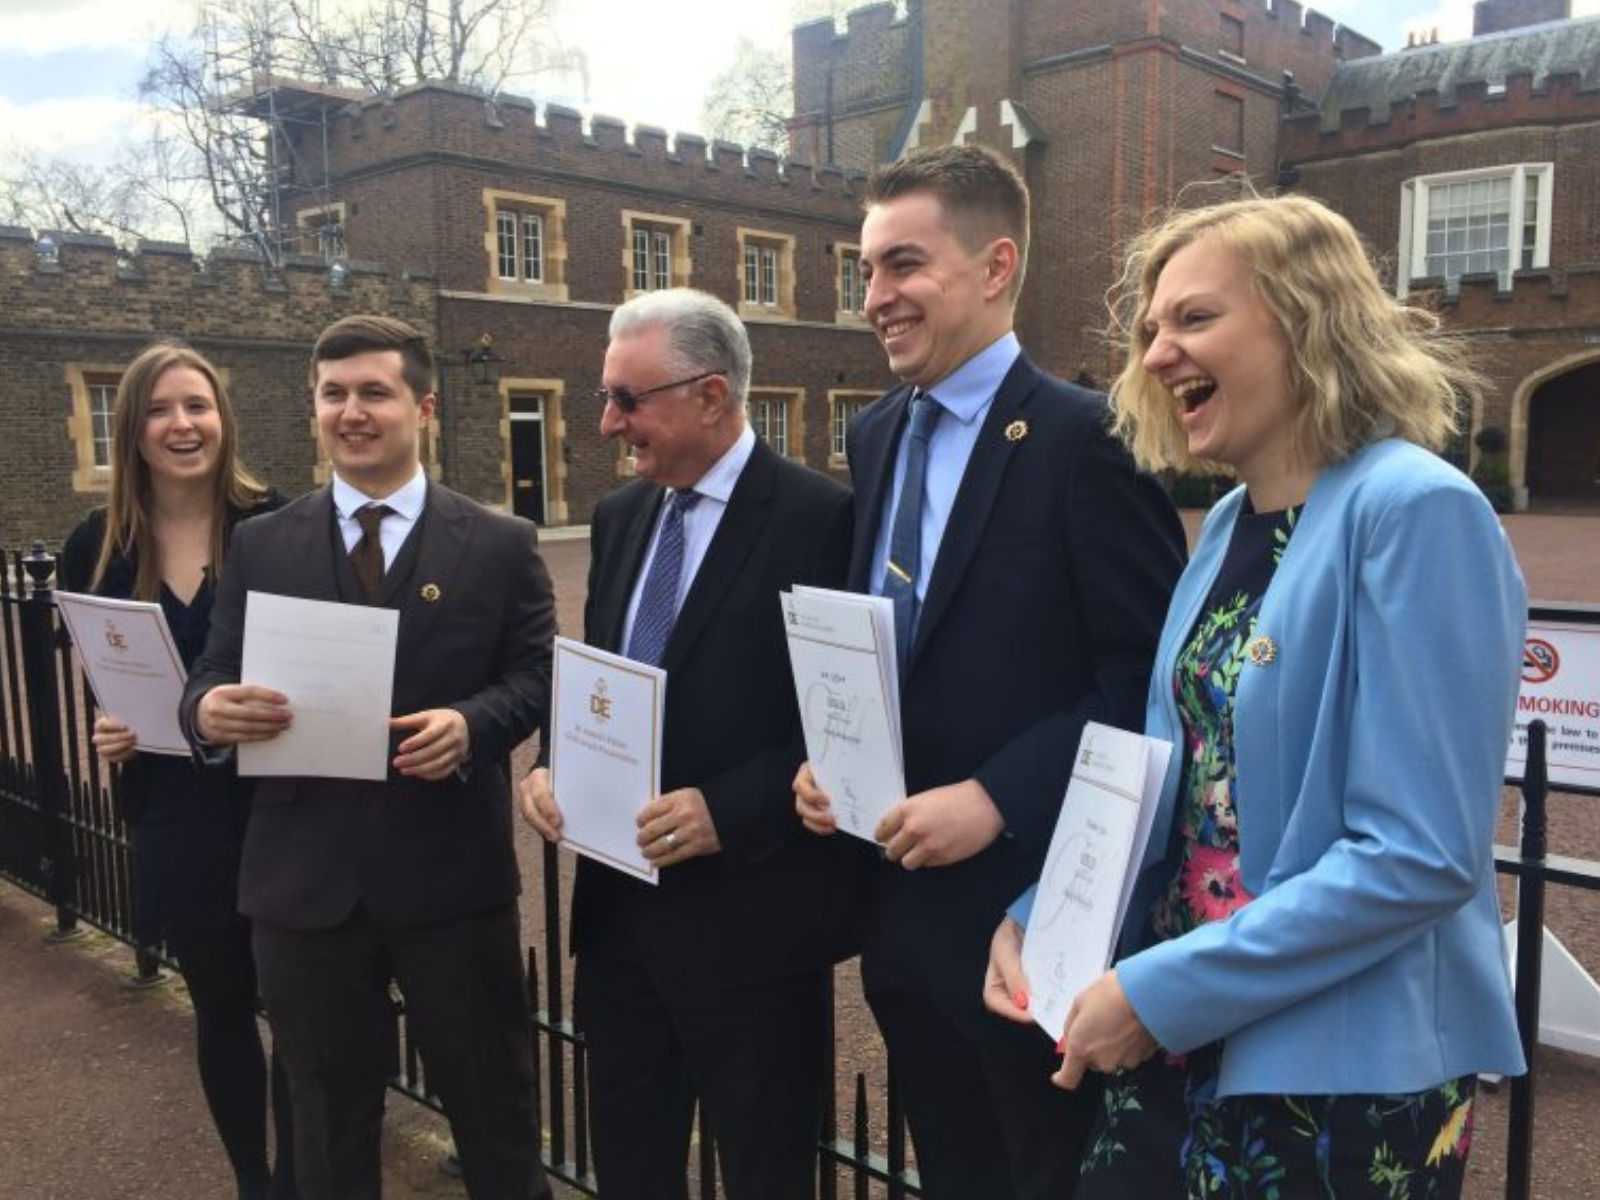 Group of Gold DofE Award holders with certificates at St James's Palace